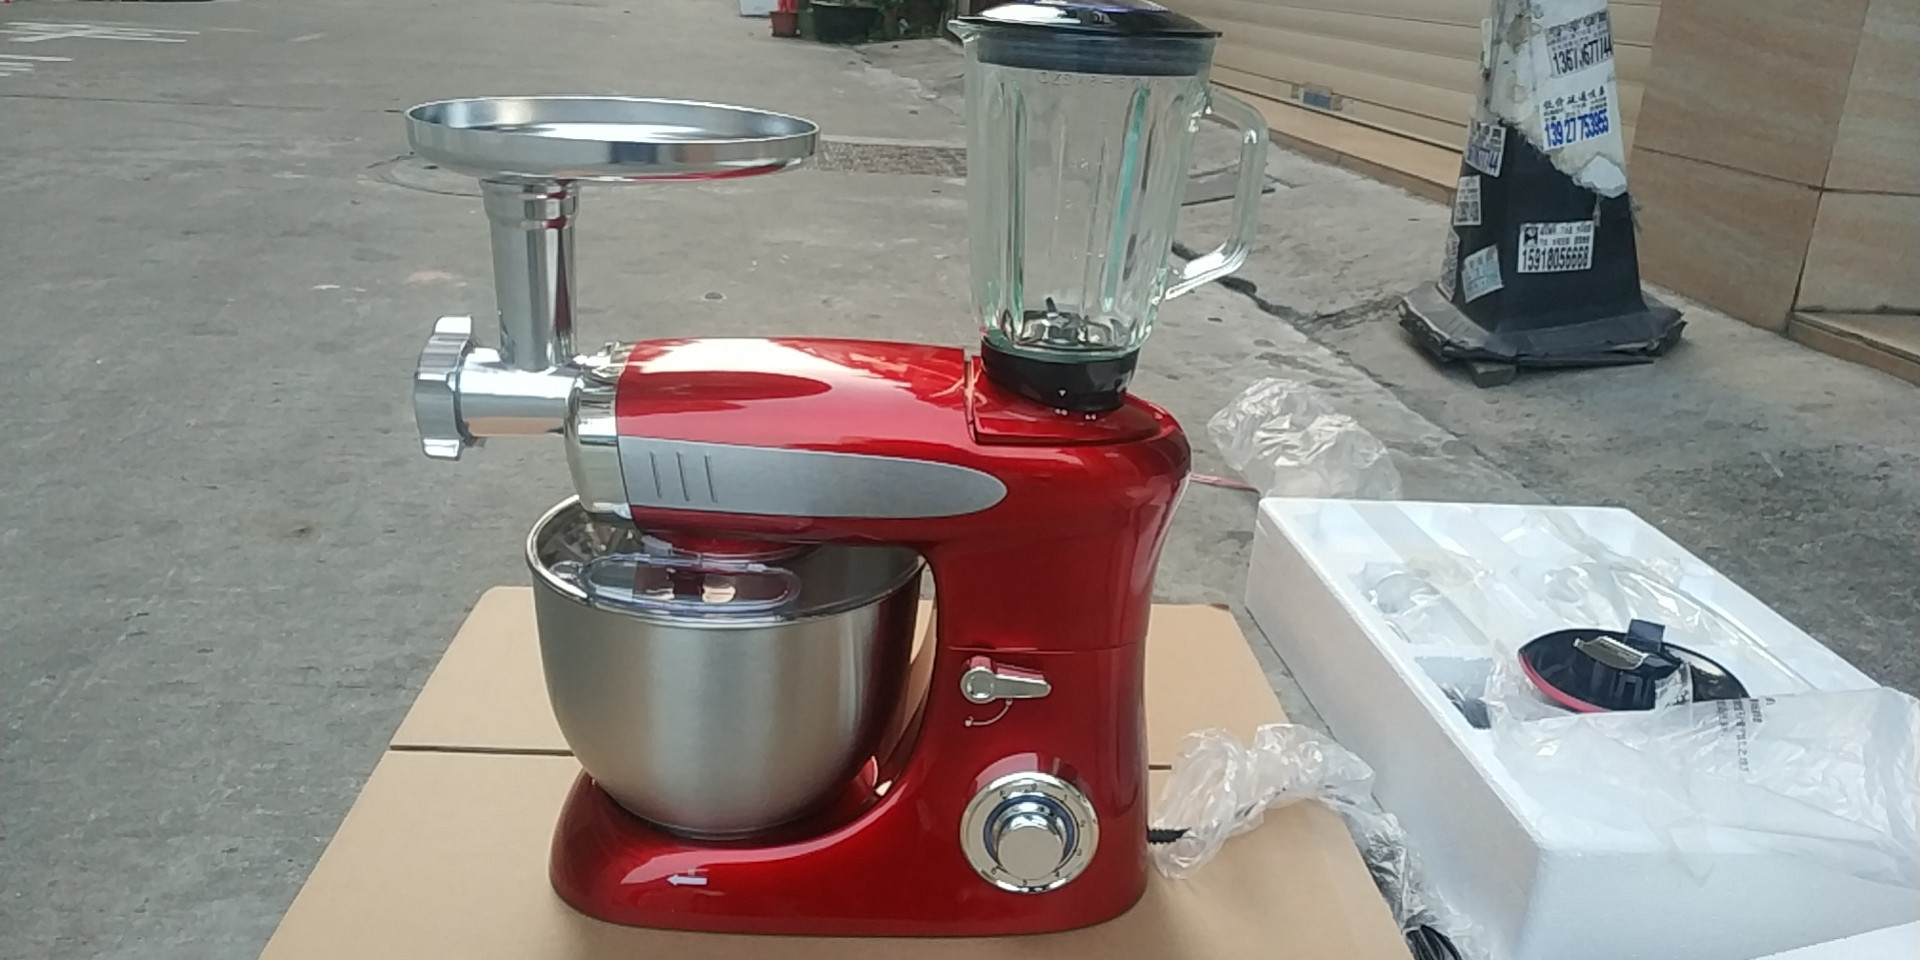 1000W 3 in 1 multi-function planetary stand food mixer with meat grinder & blender & 4L bowl